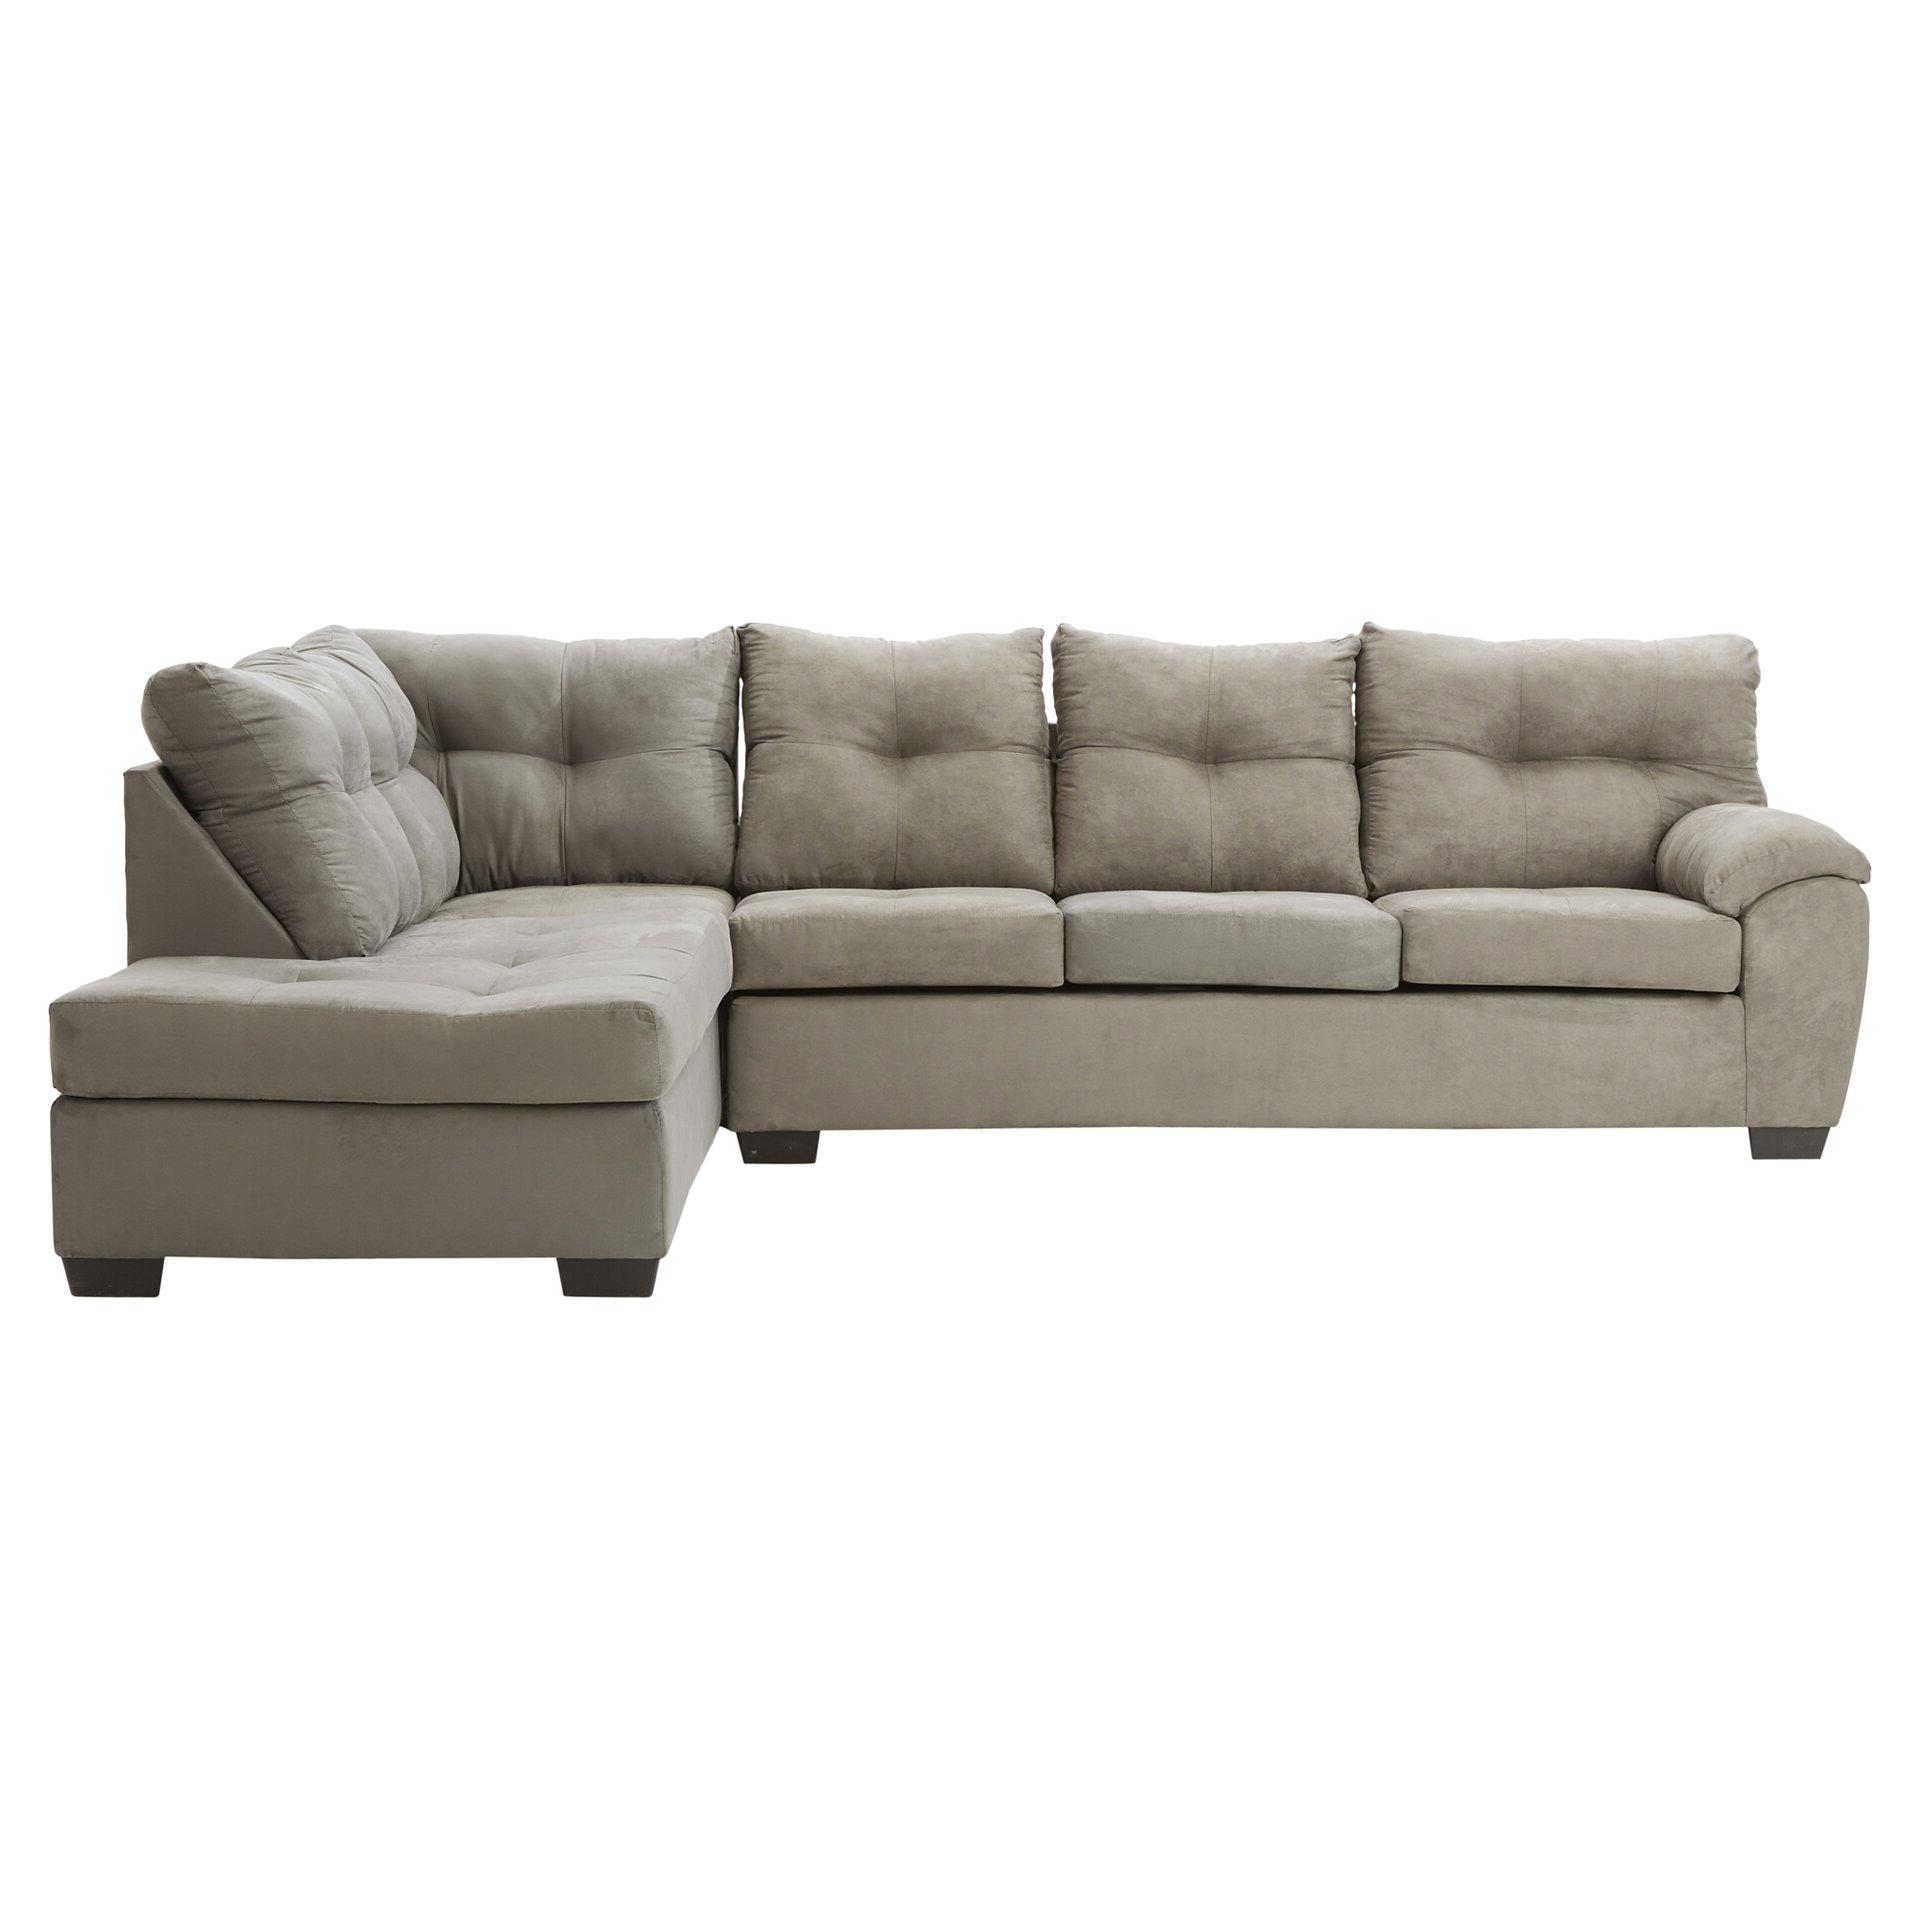 Latest Three Posts Camden Right Hand Facing Sectional & Reviews Pertaining To Kiefer Right Facing Sectional Sofas (View 16 of 20)